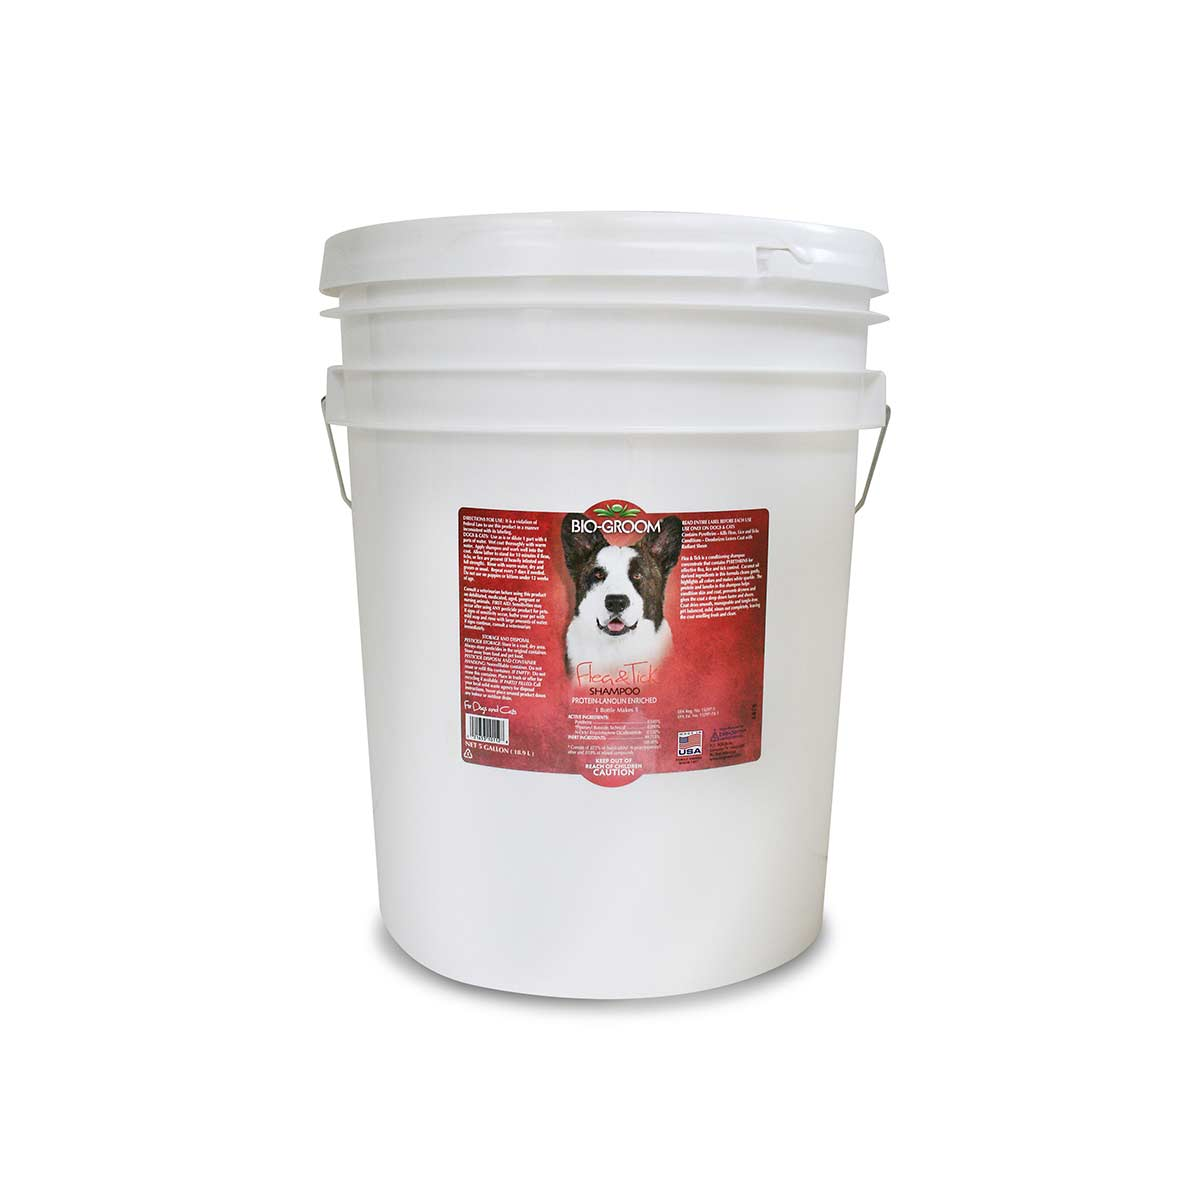 5 Gallon 4:1 Bio-Groom Flea & Tick Dog Shampoo for Grooming